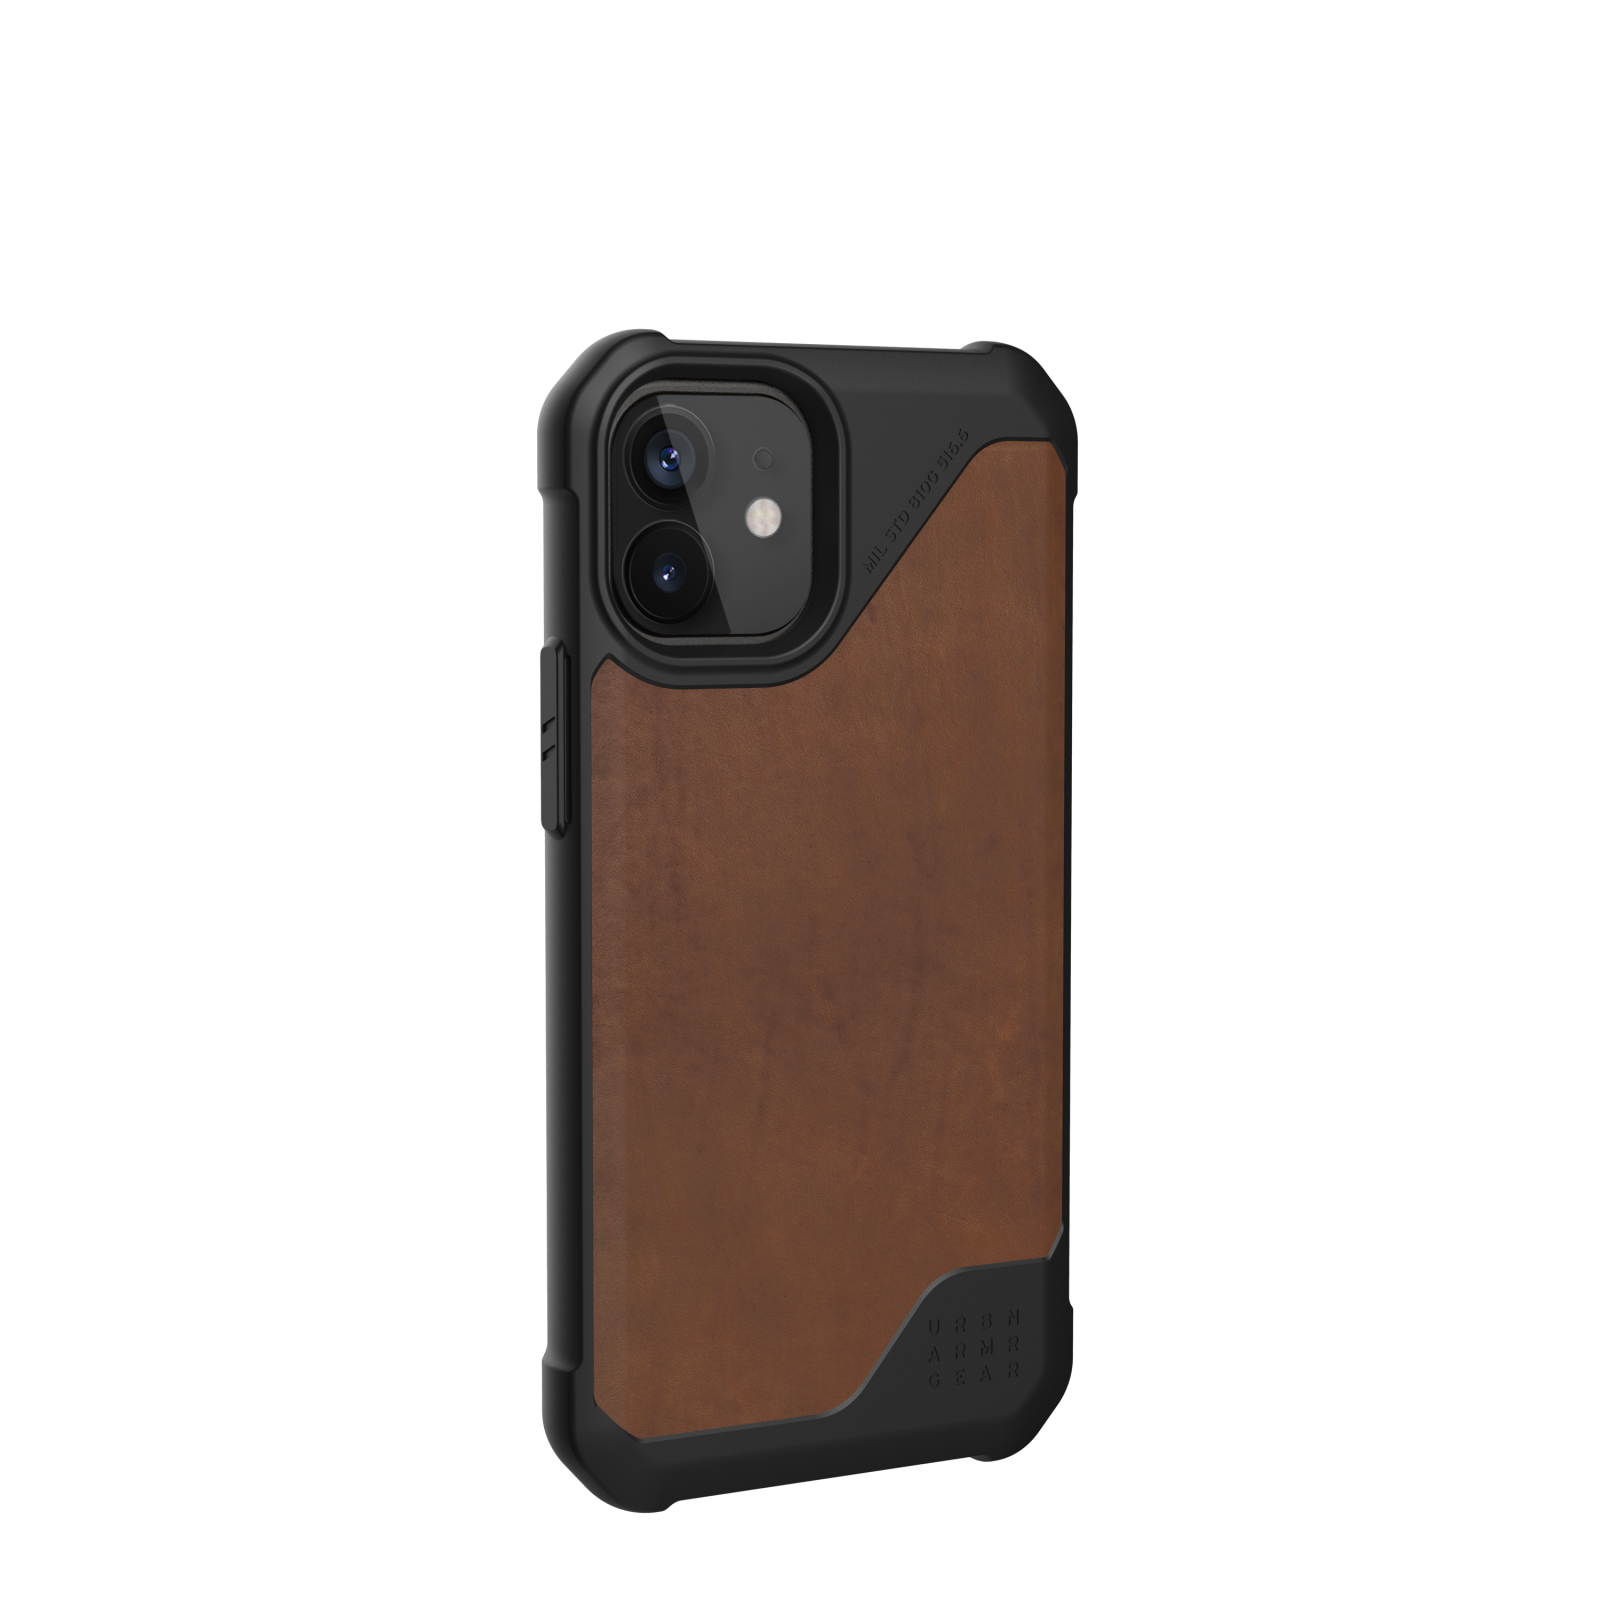 ỐP LƯNG UAG METROPOLIS LT CHO IPHONE 12 MINI [5.4-INCH] - Brown